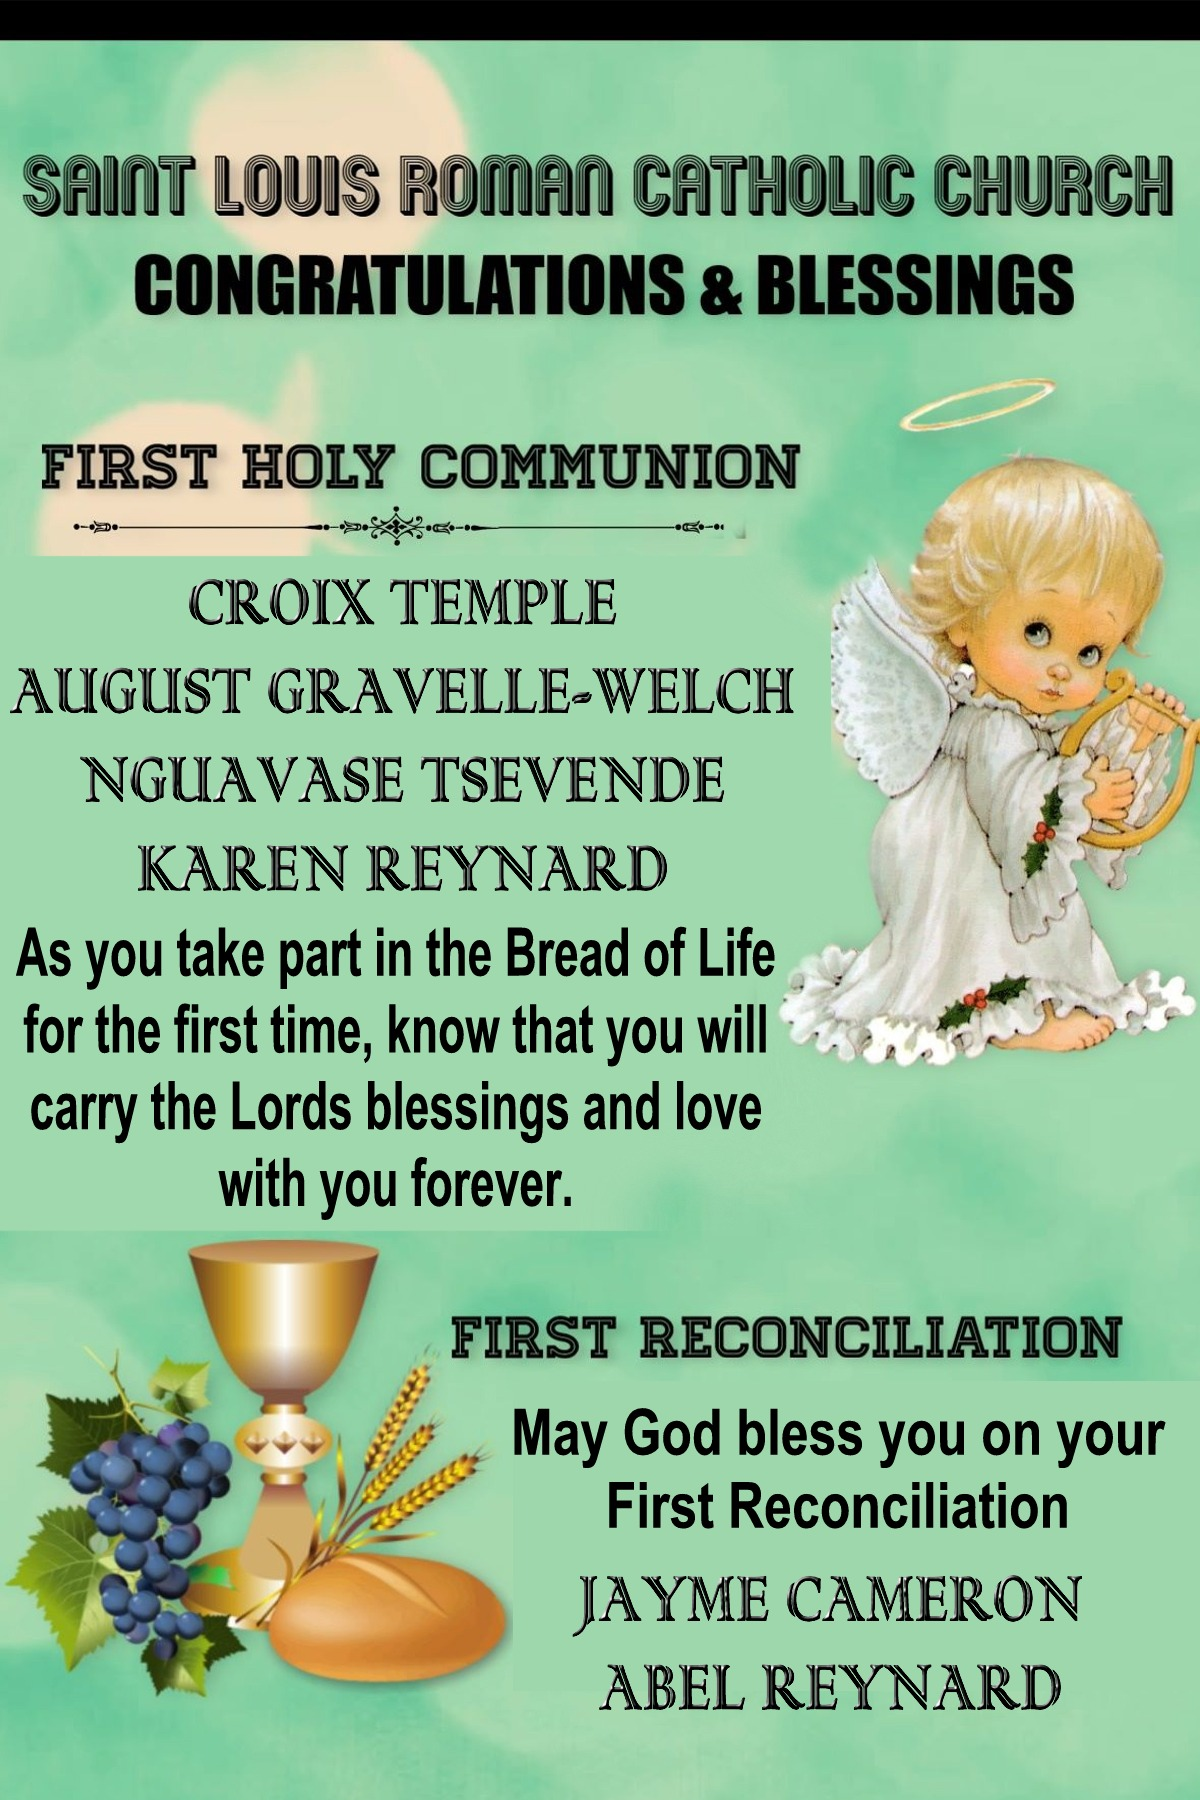 St. Louis - First Communion and Sacrament of Reconciliation